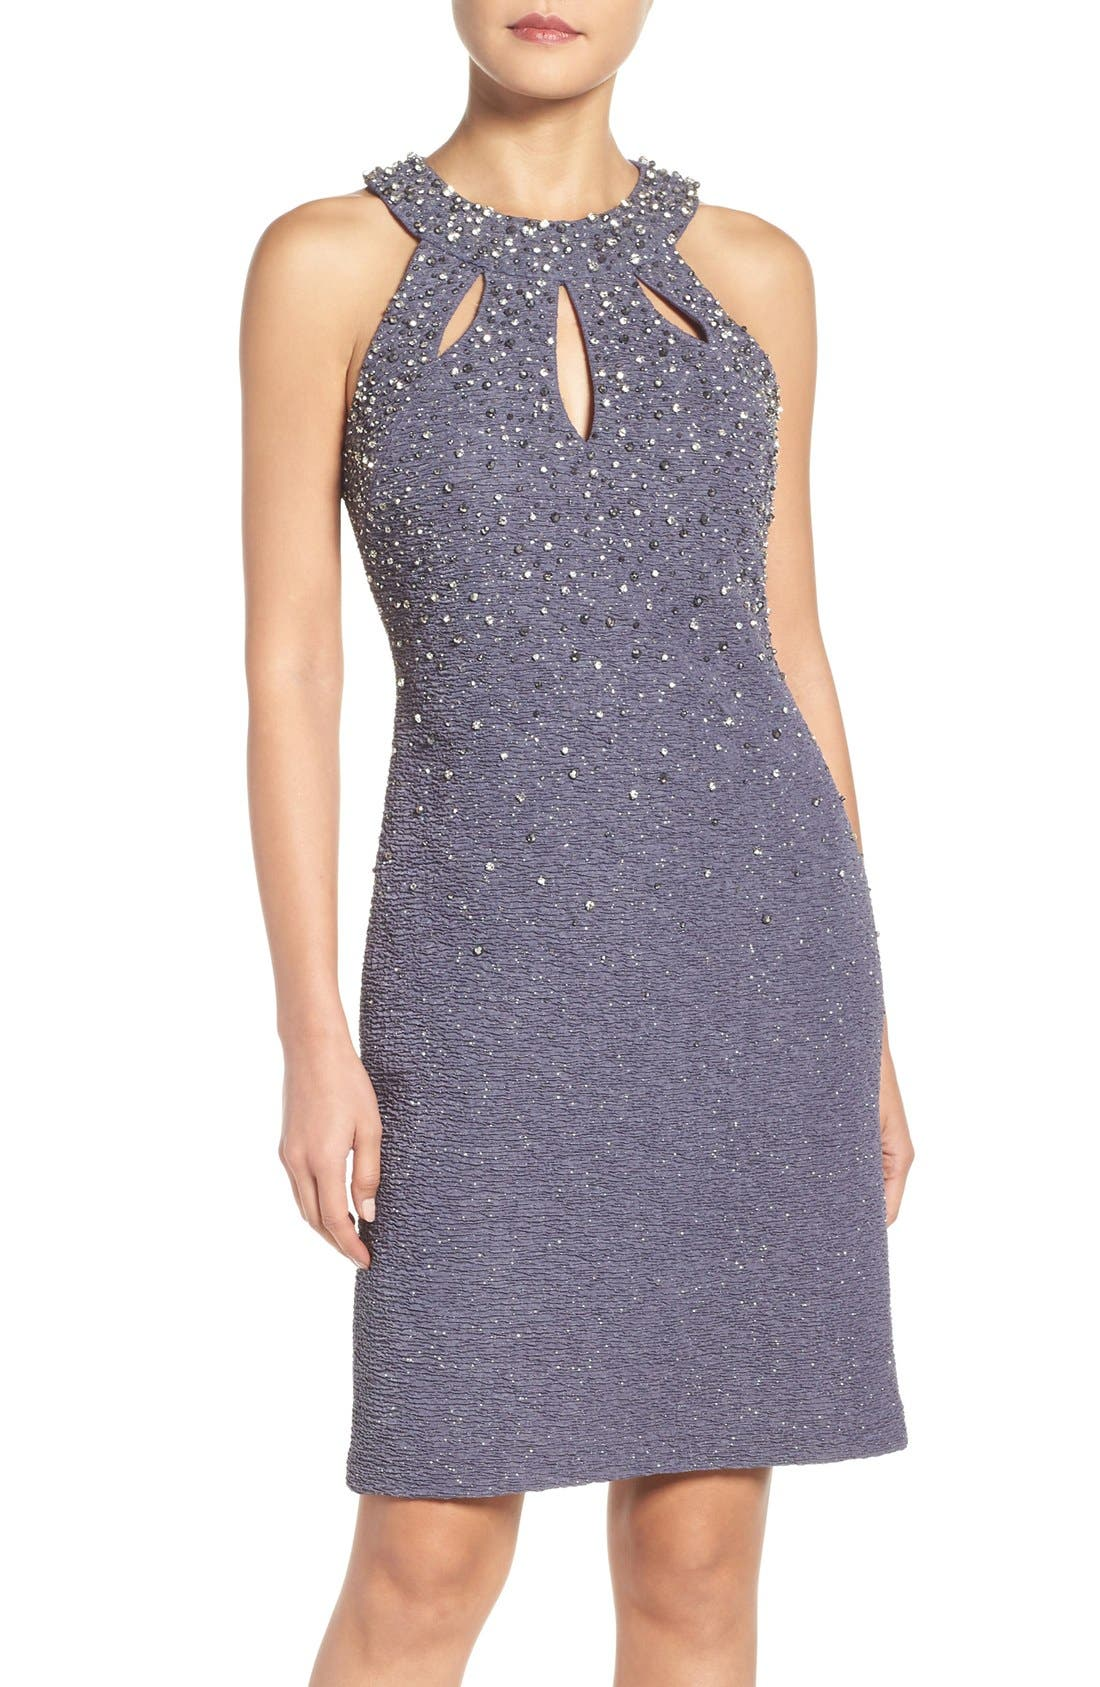 Alternate Image 1 Selected - Eliza J Embellished Sheath Dress (Regular & Petite)